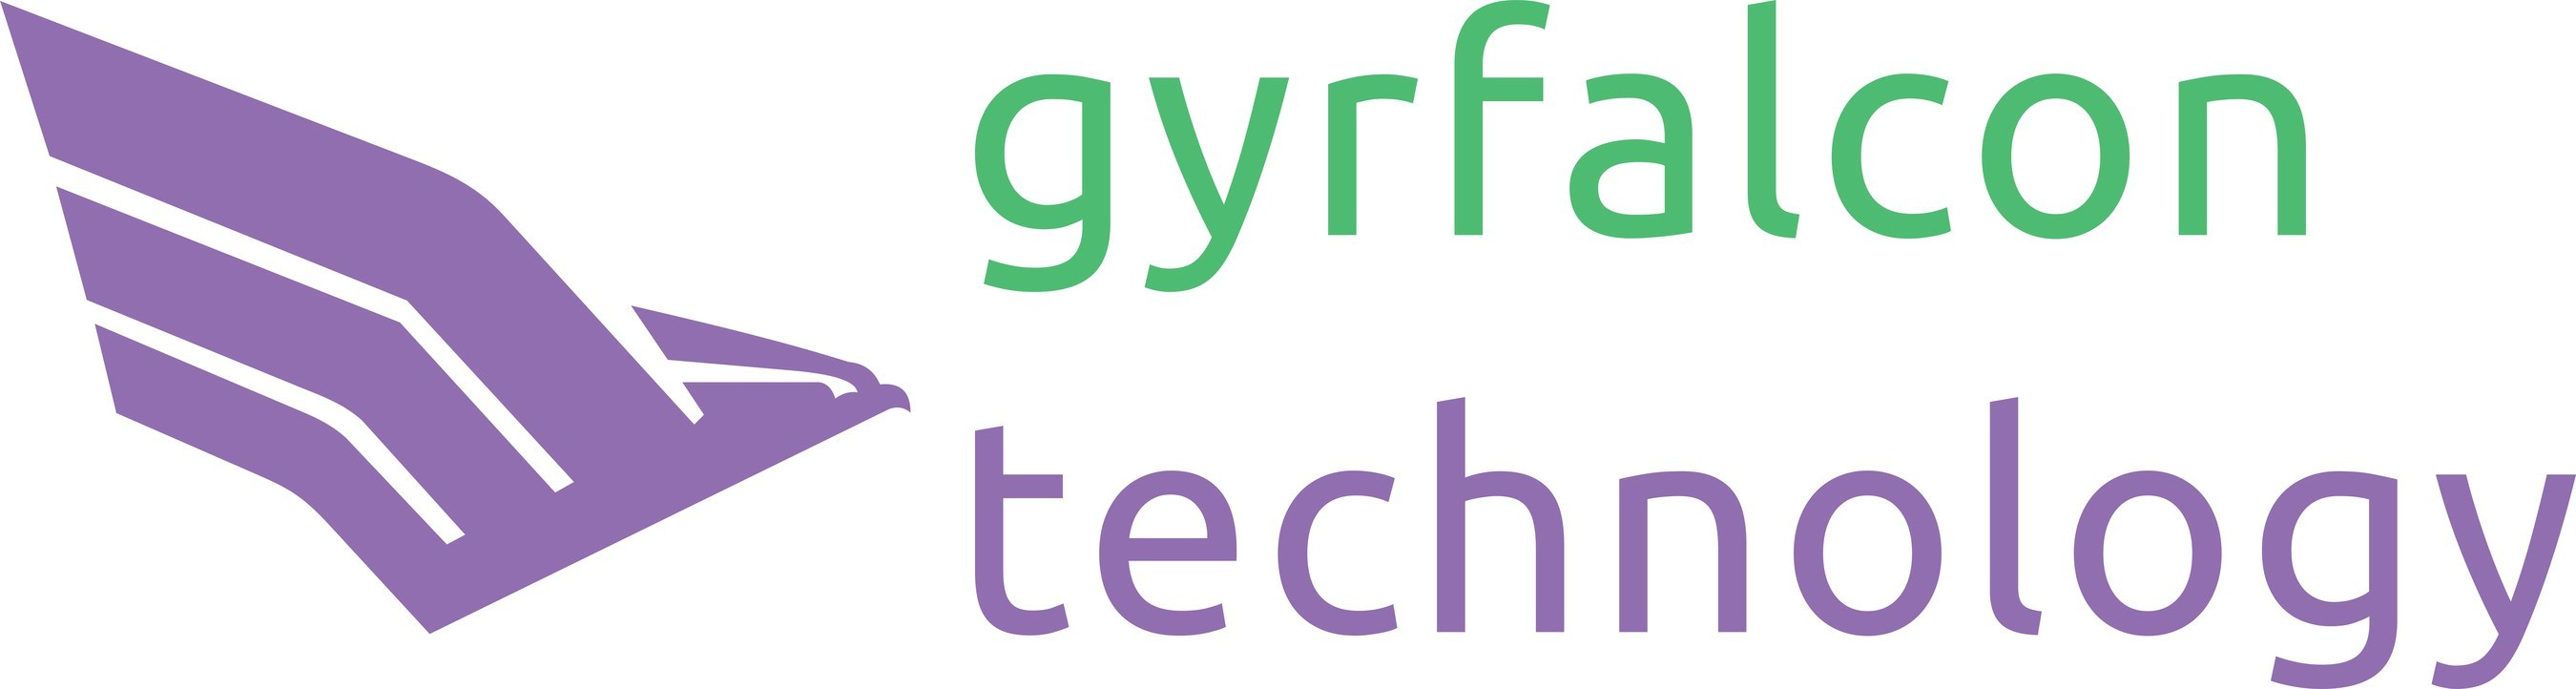 Technology Management Image: Gyrfalcon Introduces GAINBOARD™ 2803S Inference